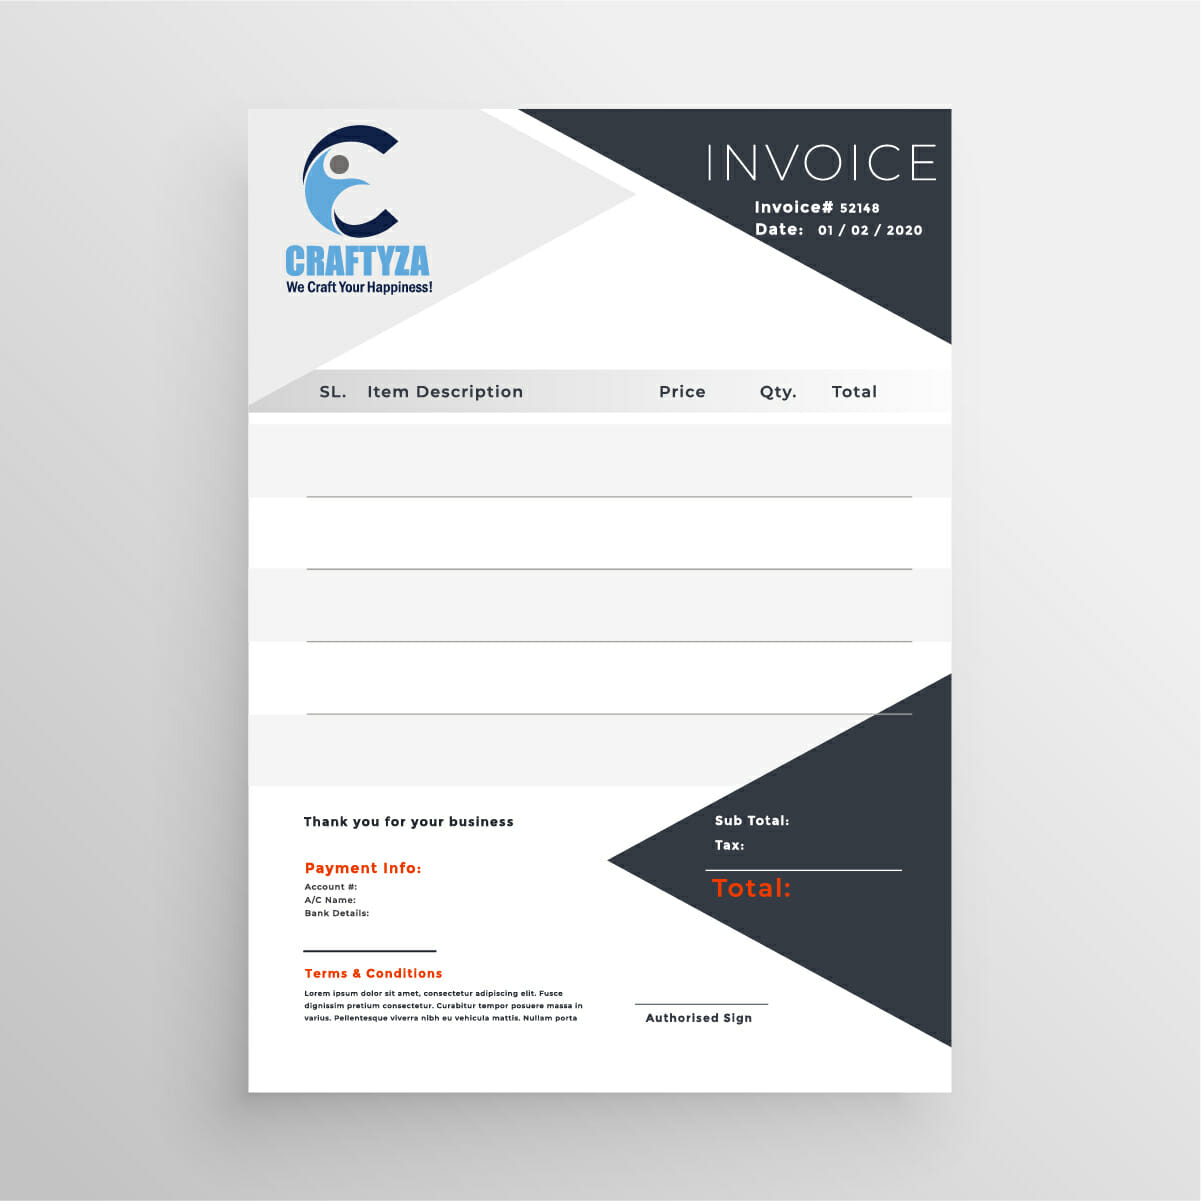 Invoice Design for gift and customized ecommerce website by Badri Design